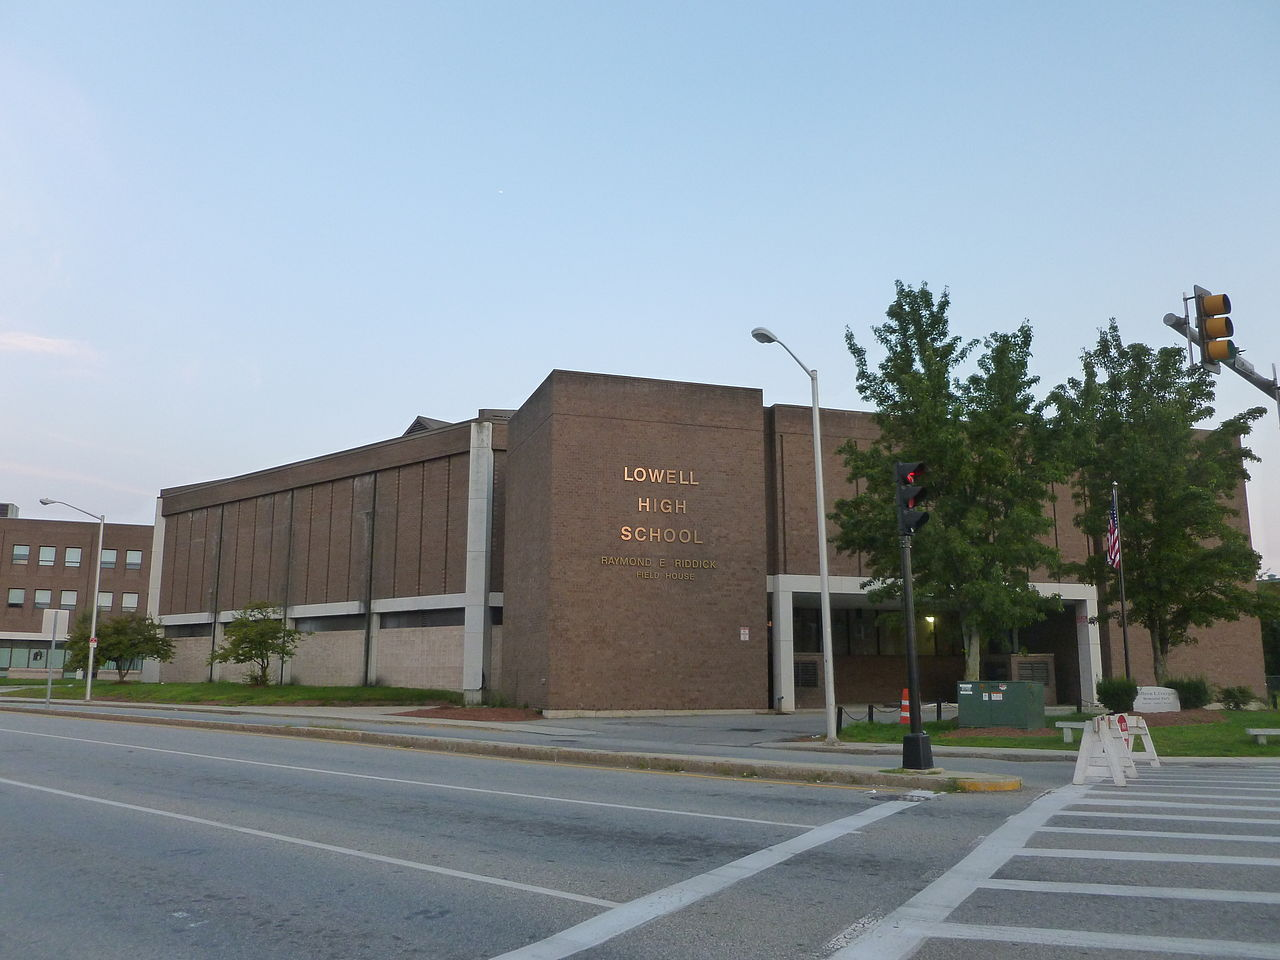 File:Lowell High School field house; Lowell, MA; 2011-08 ...